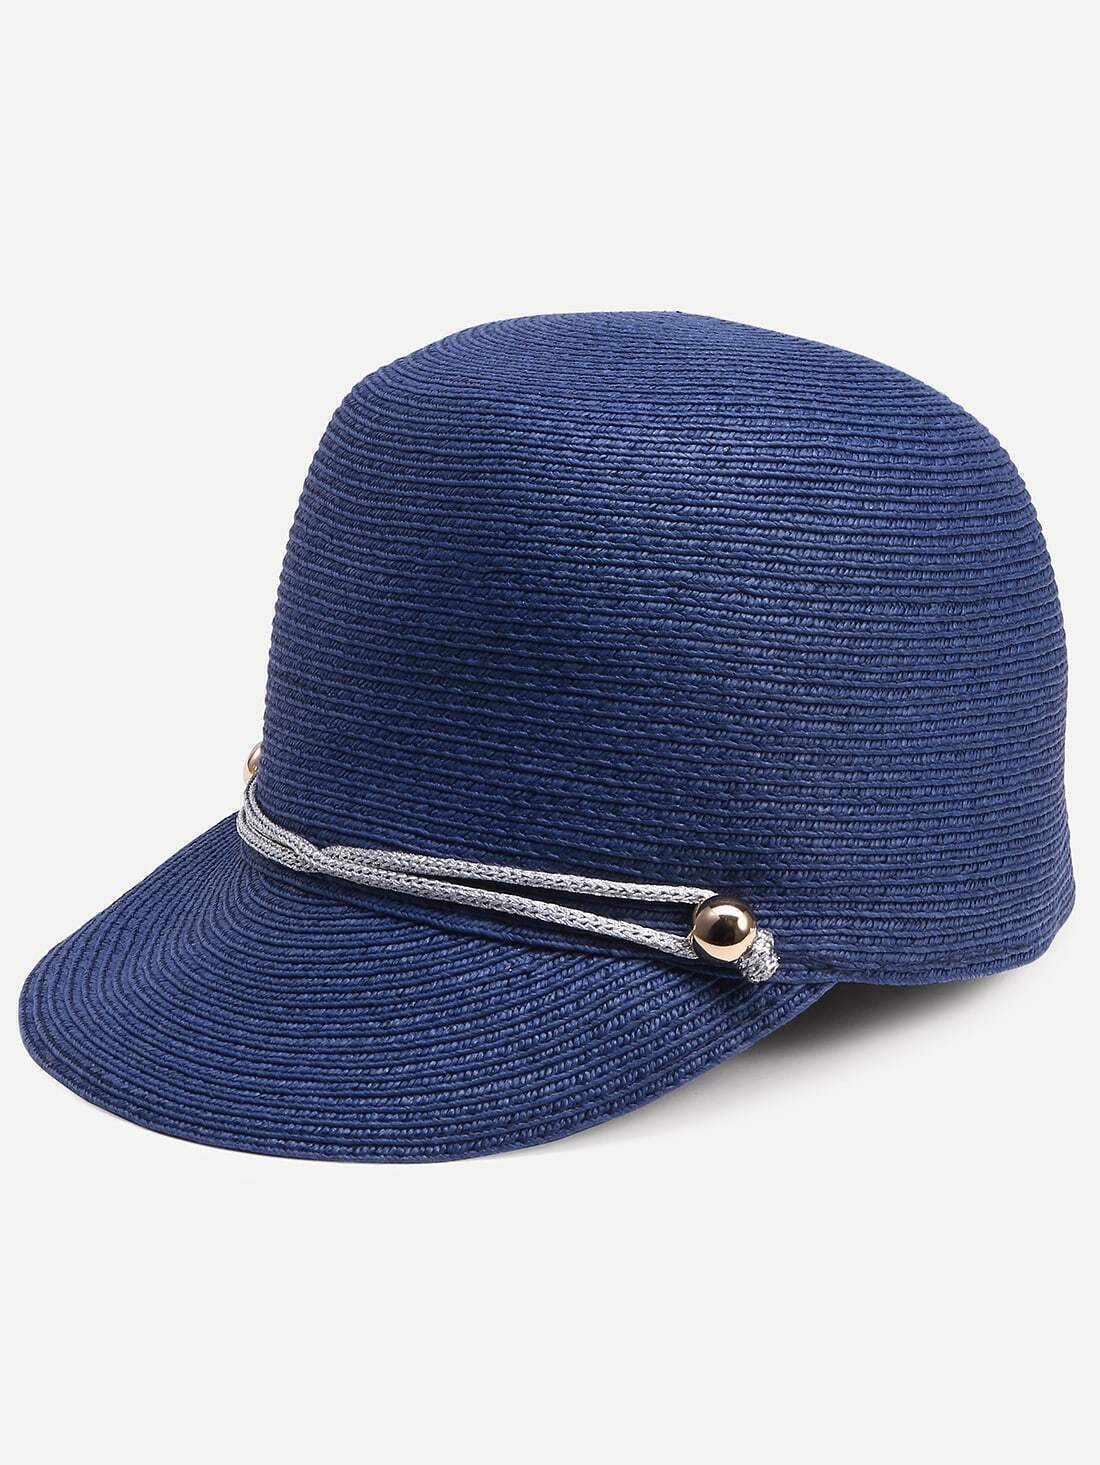 navy adjustable line trimmed straw baseball hat